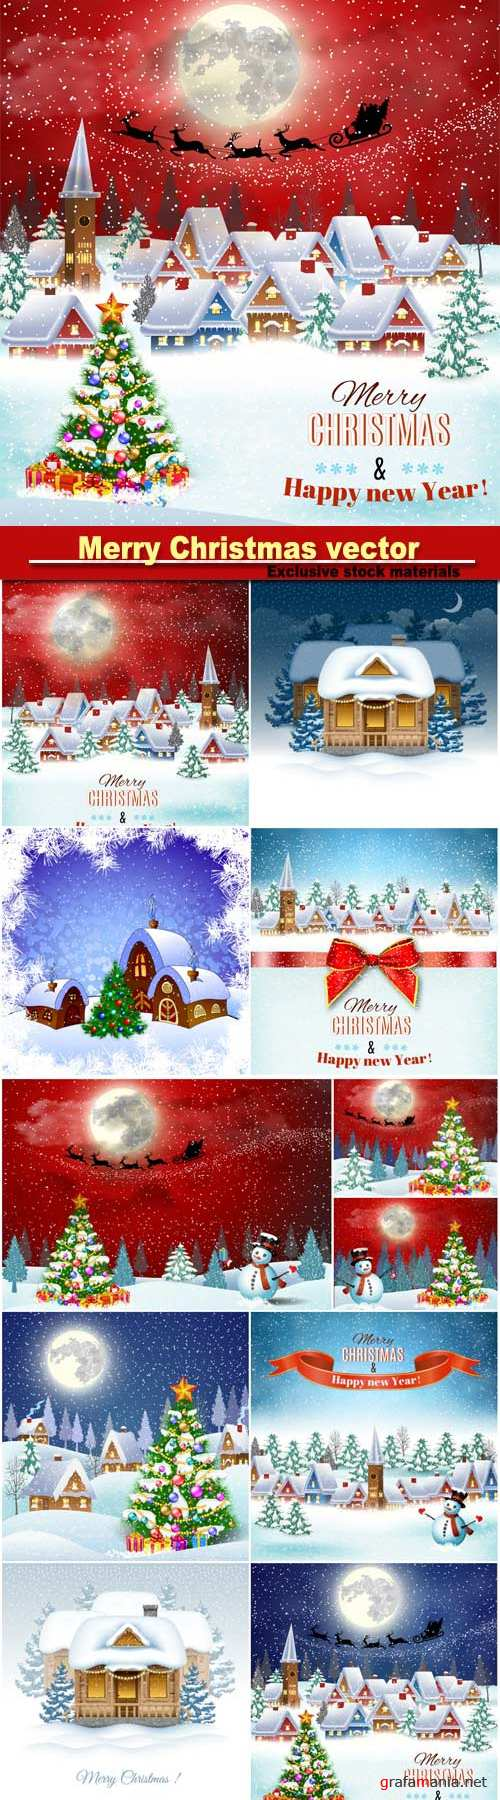 Christmas backgrounds in vector winter landscape with village houses and snowmen